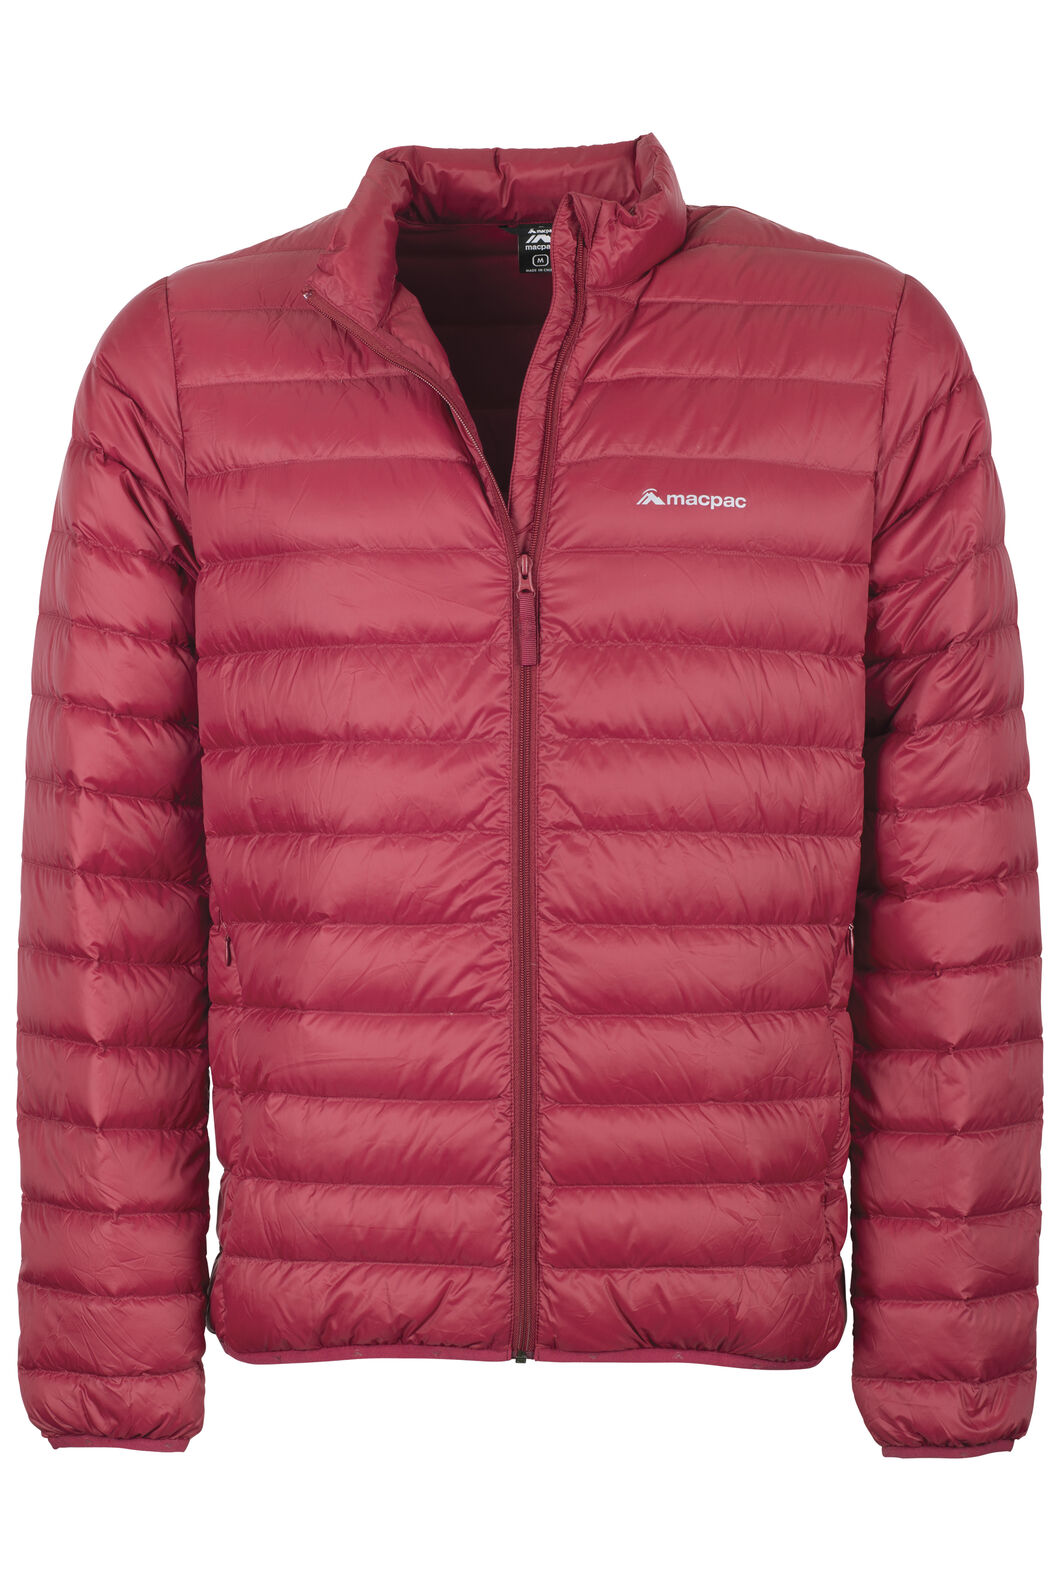 Uber Light Down Jacket - Men's, Biking Red, hi-res